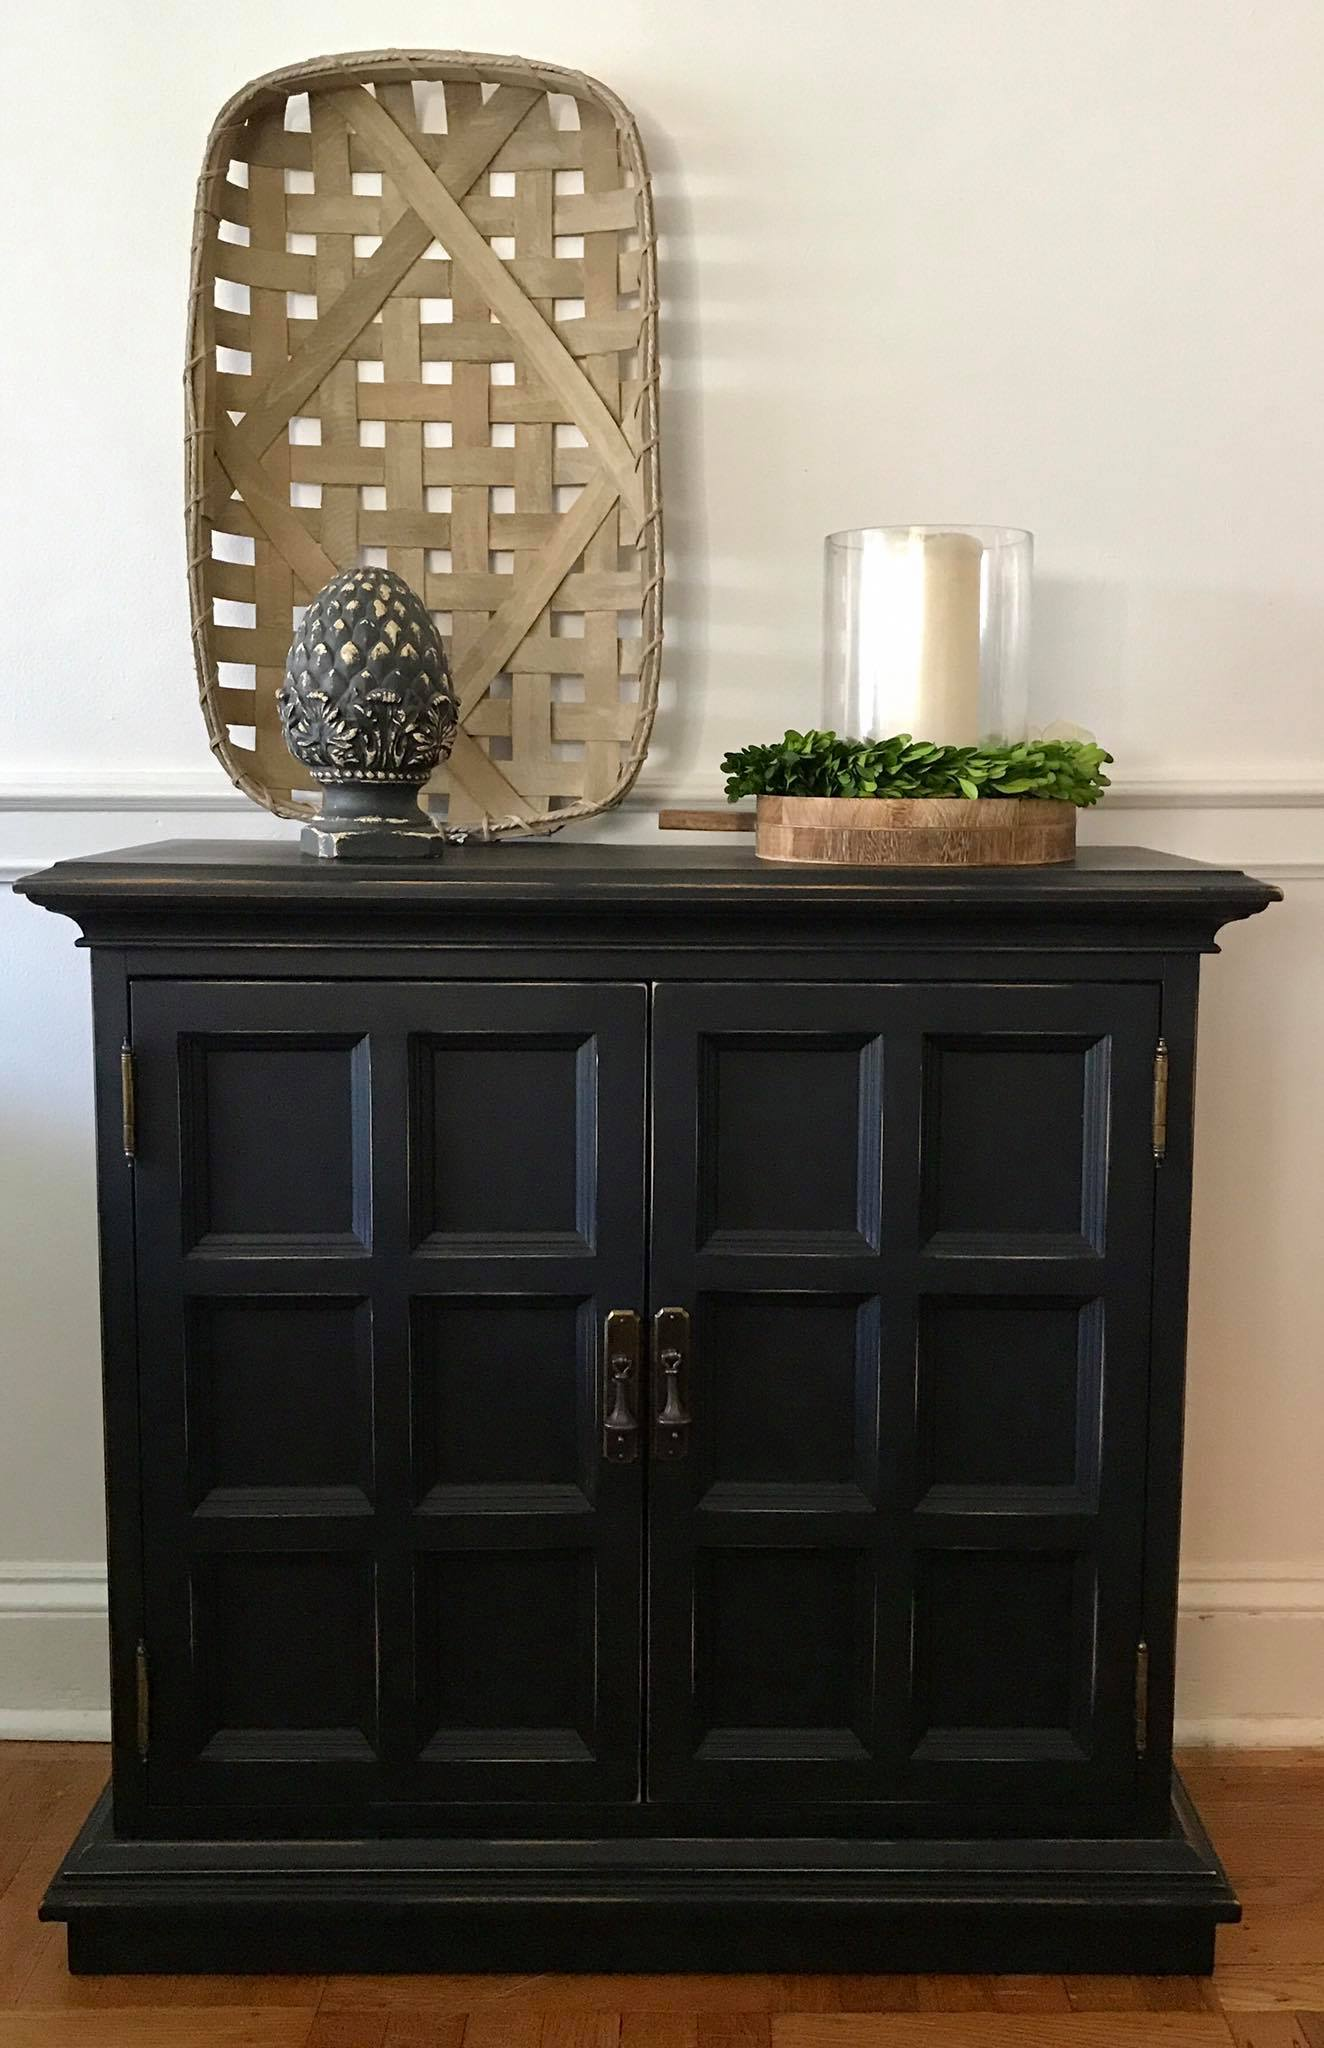 Ethan Allen Used Furniture >> Ethan Allen Console Cabinet in Lamp Black | General ...